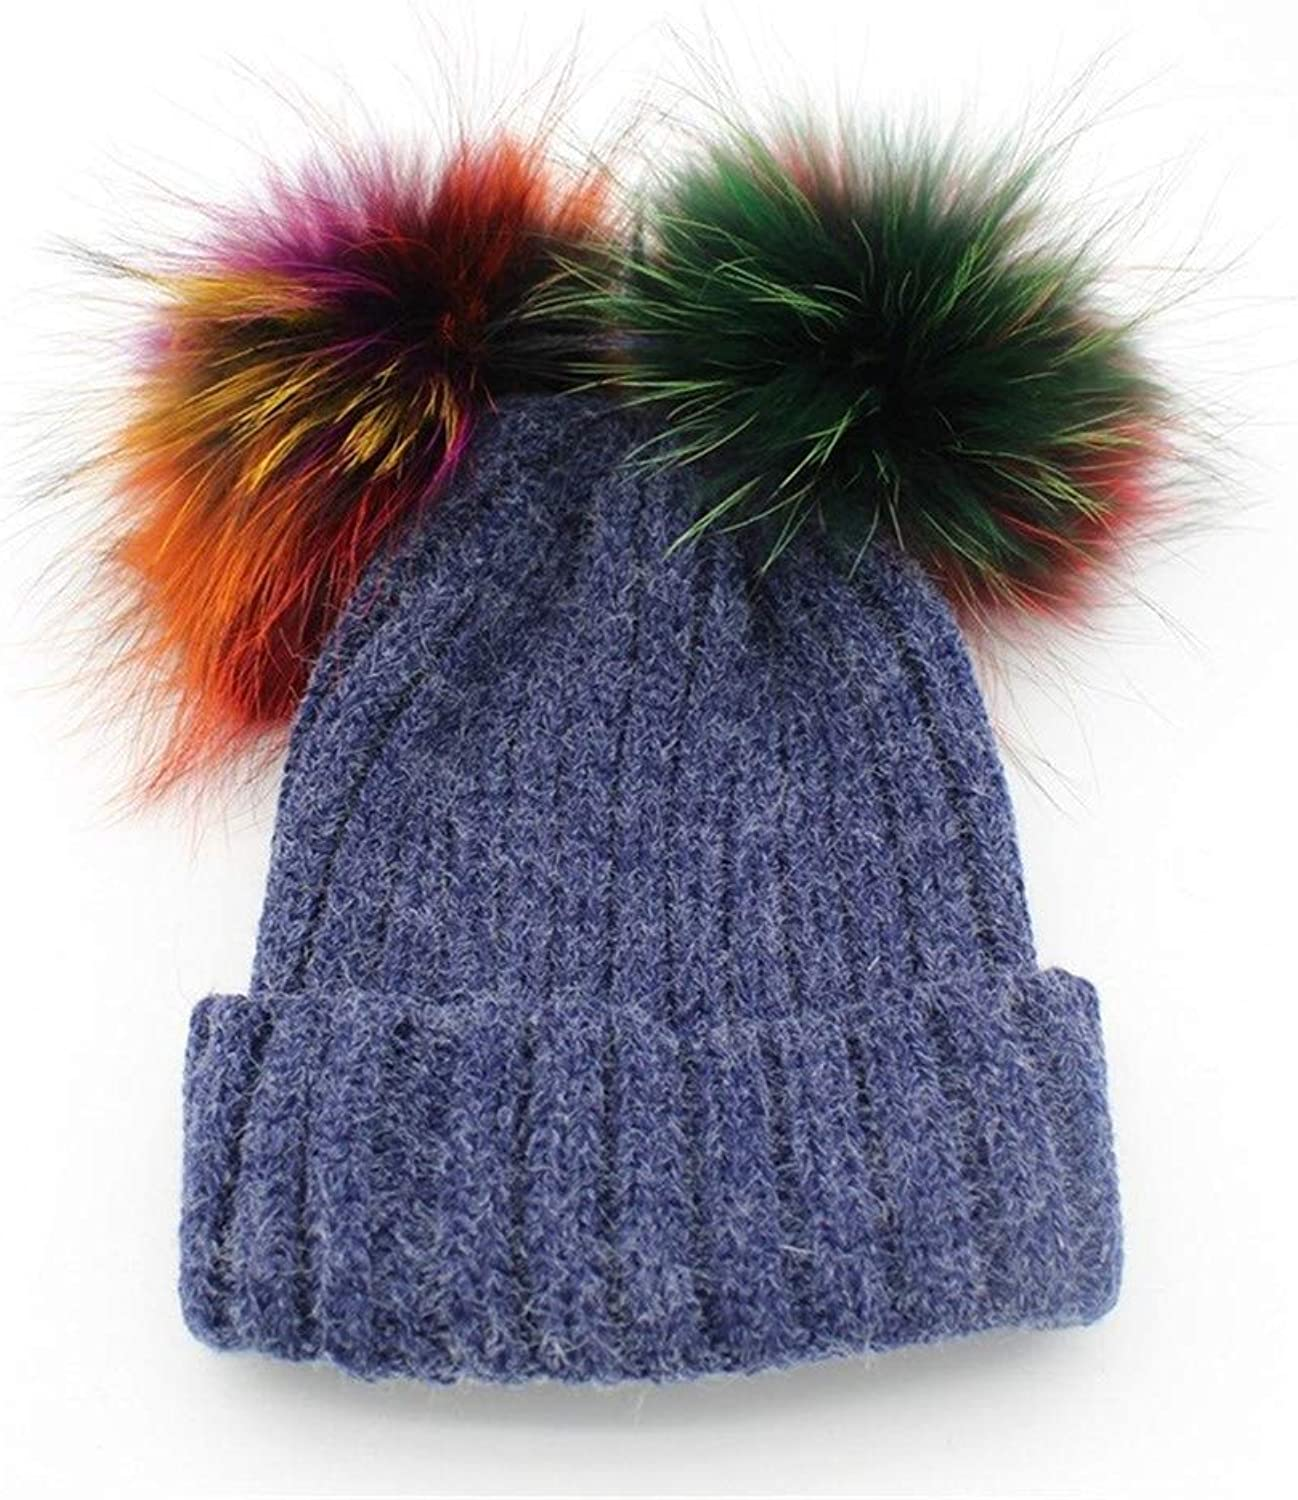 Women's Knitted Hat Autumn Winter Thickened Warm Soft Pompom Cap for Young Girls (color   bluee)